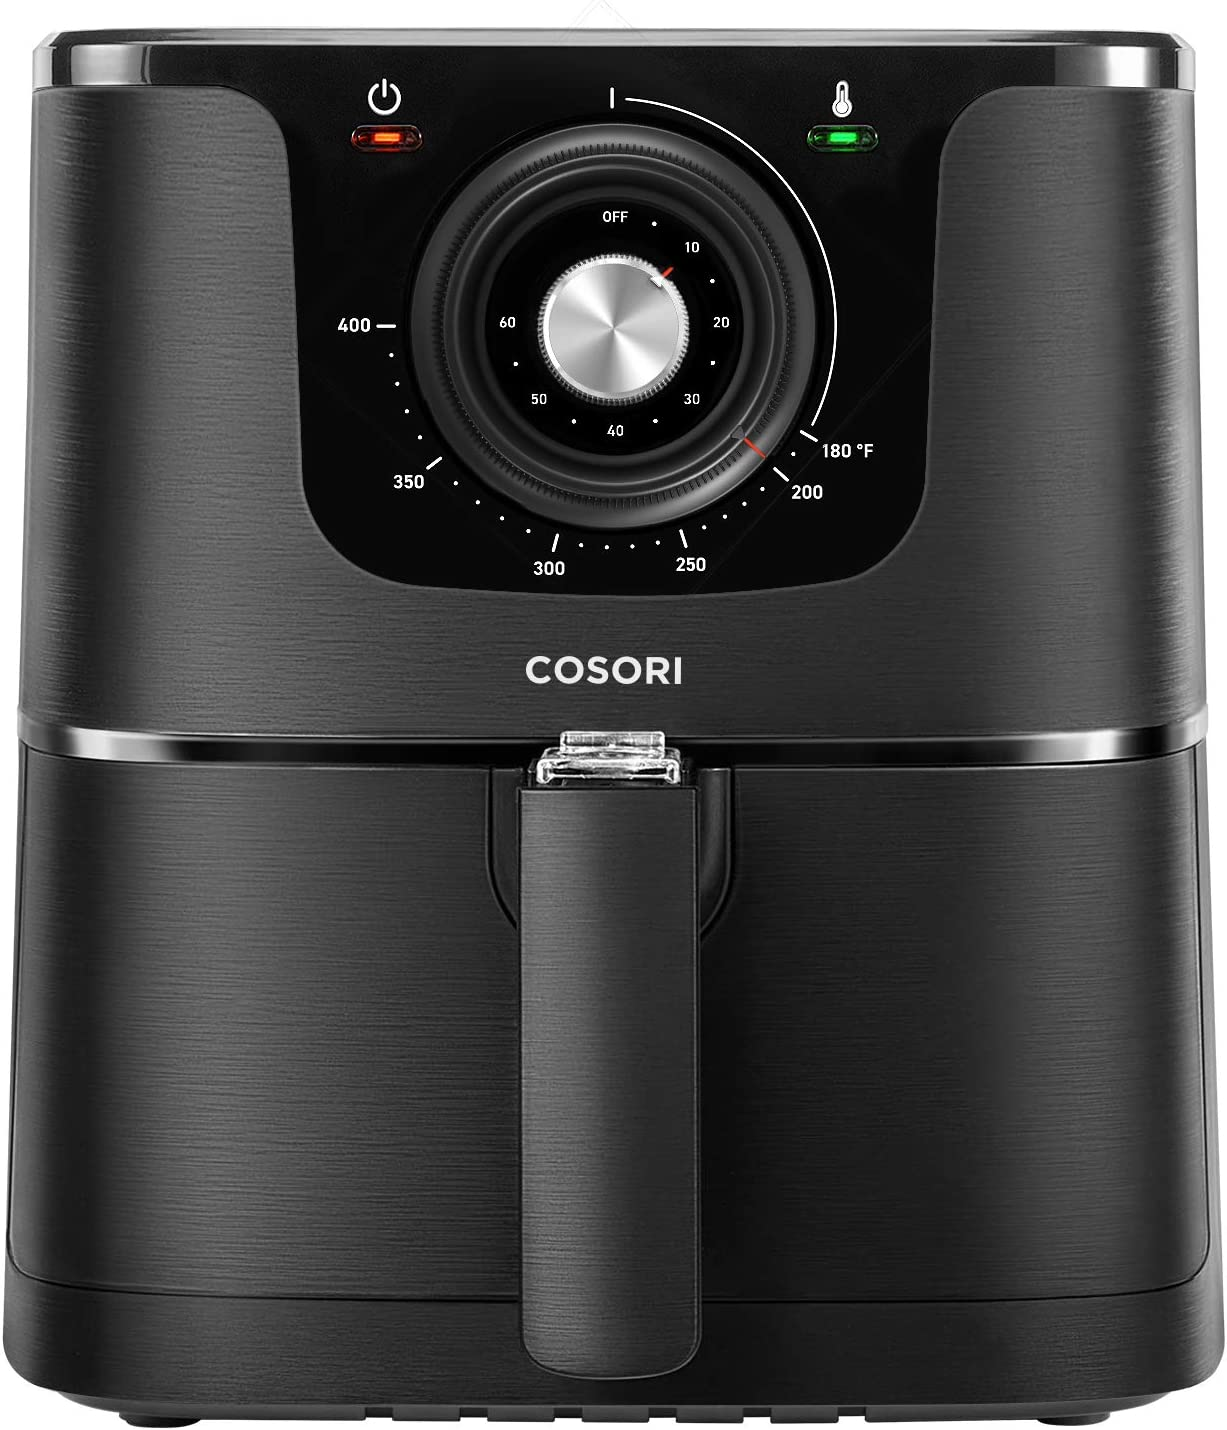 COSORI Air Fryer, Max XL 5.8-Quart, 1700-Watt Electric Hot Air Fryer Oven Oilless Cooker With Deluxe Temperature Knob Control, Nonstick Basket,Recipe Cookbook Included,ETL Listed